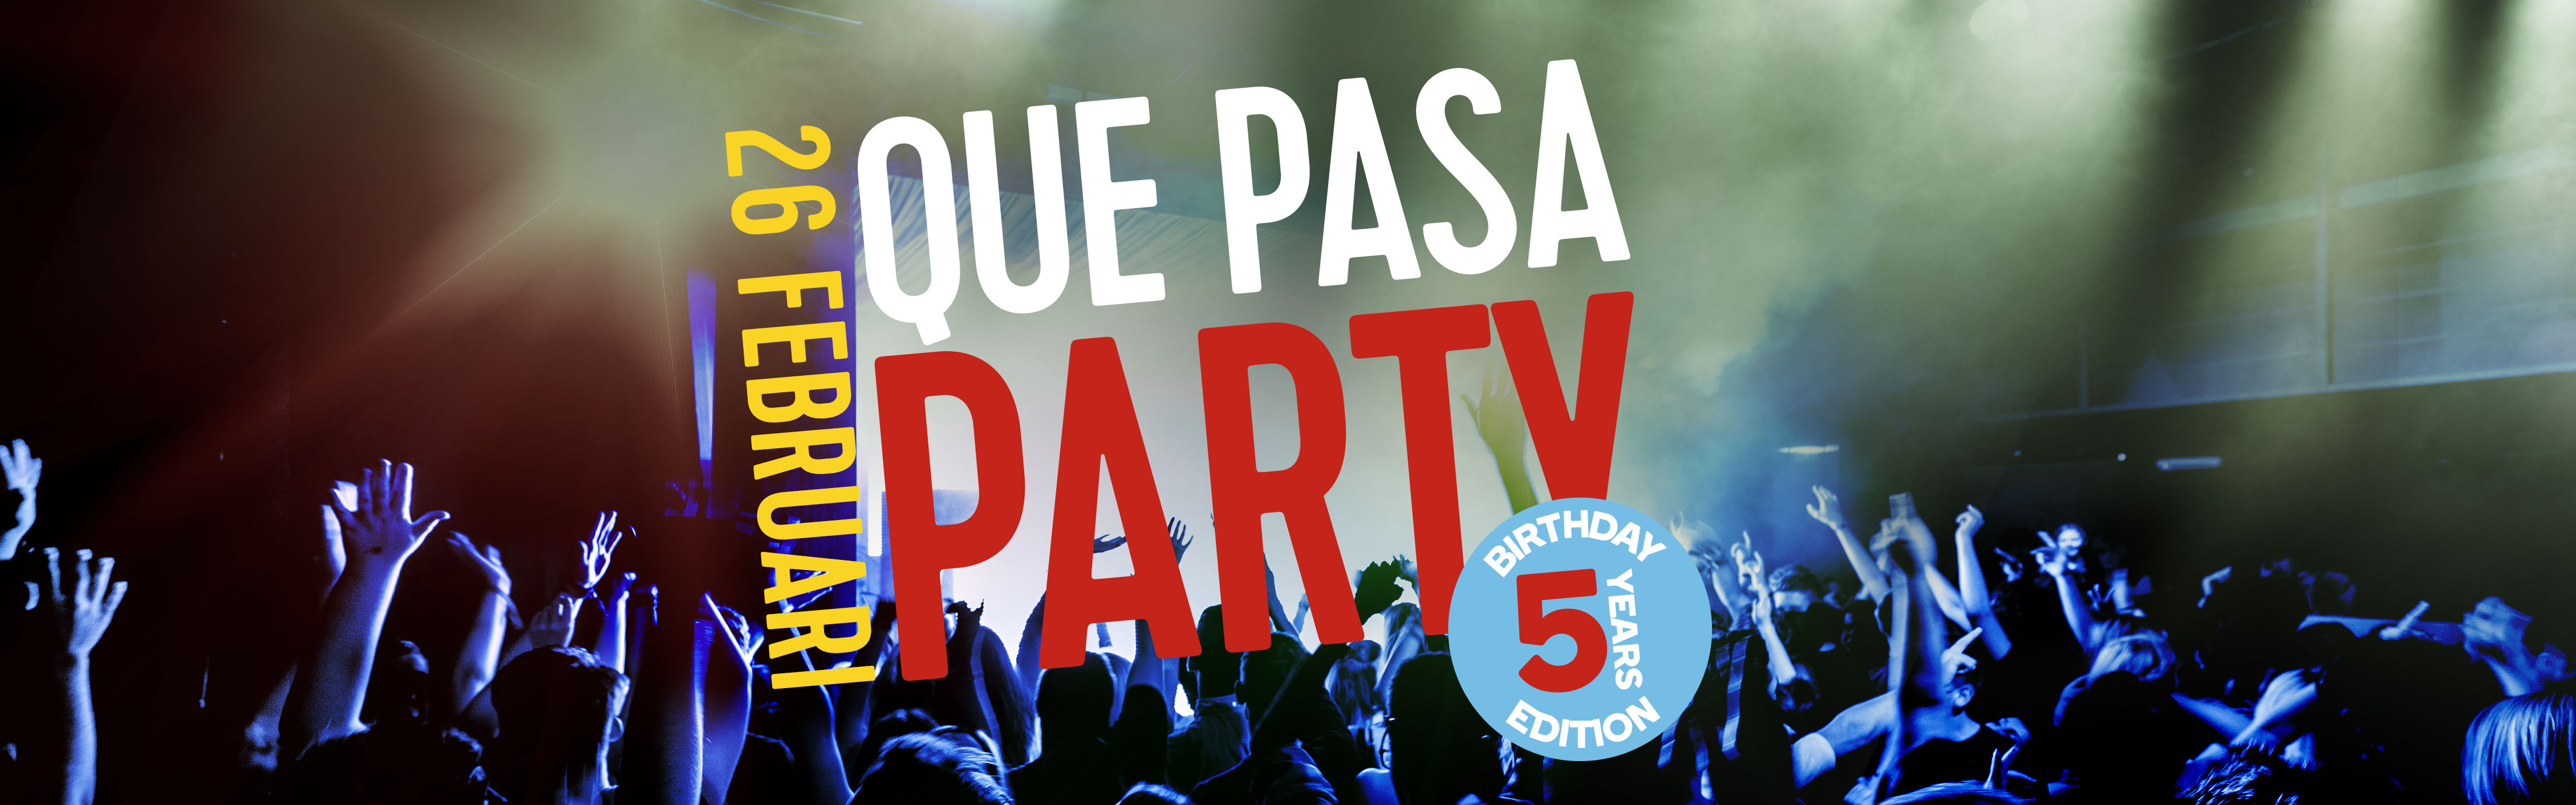 Quepasaparty 5jaar header